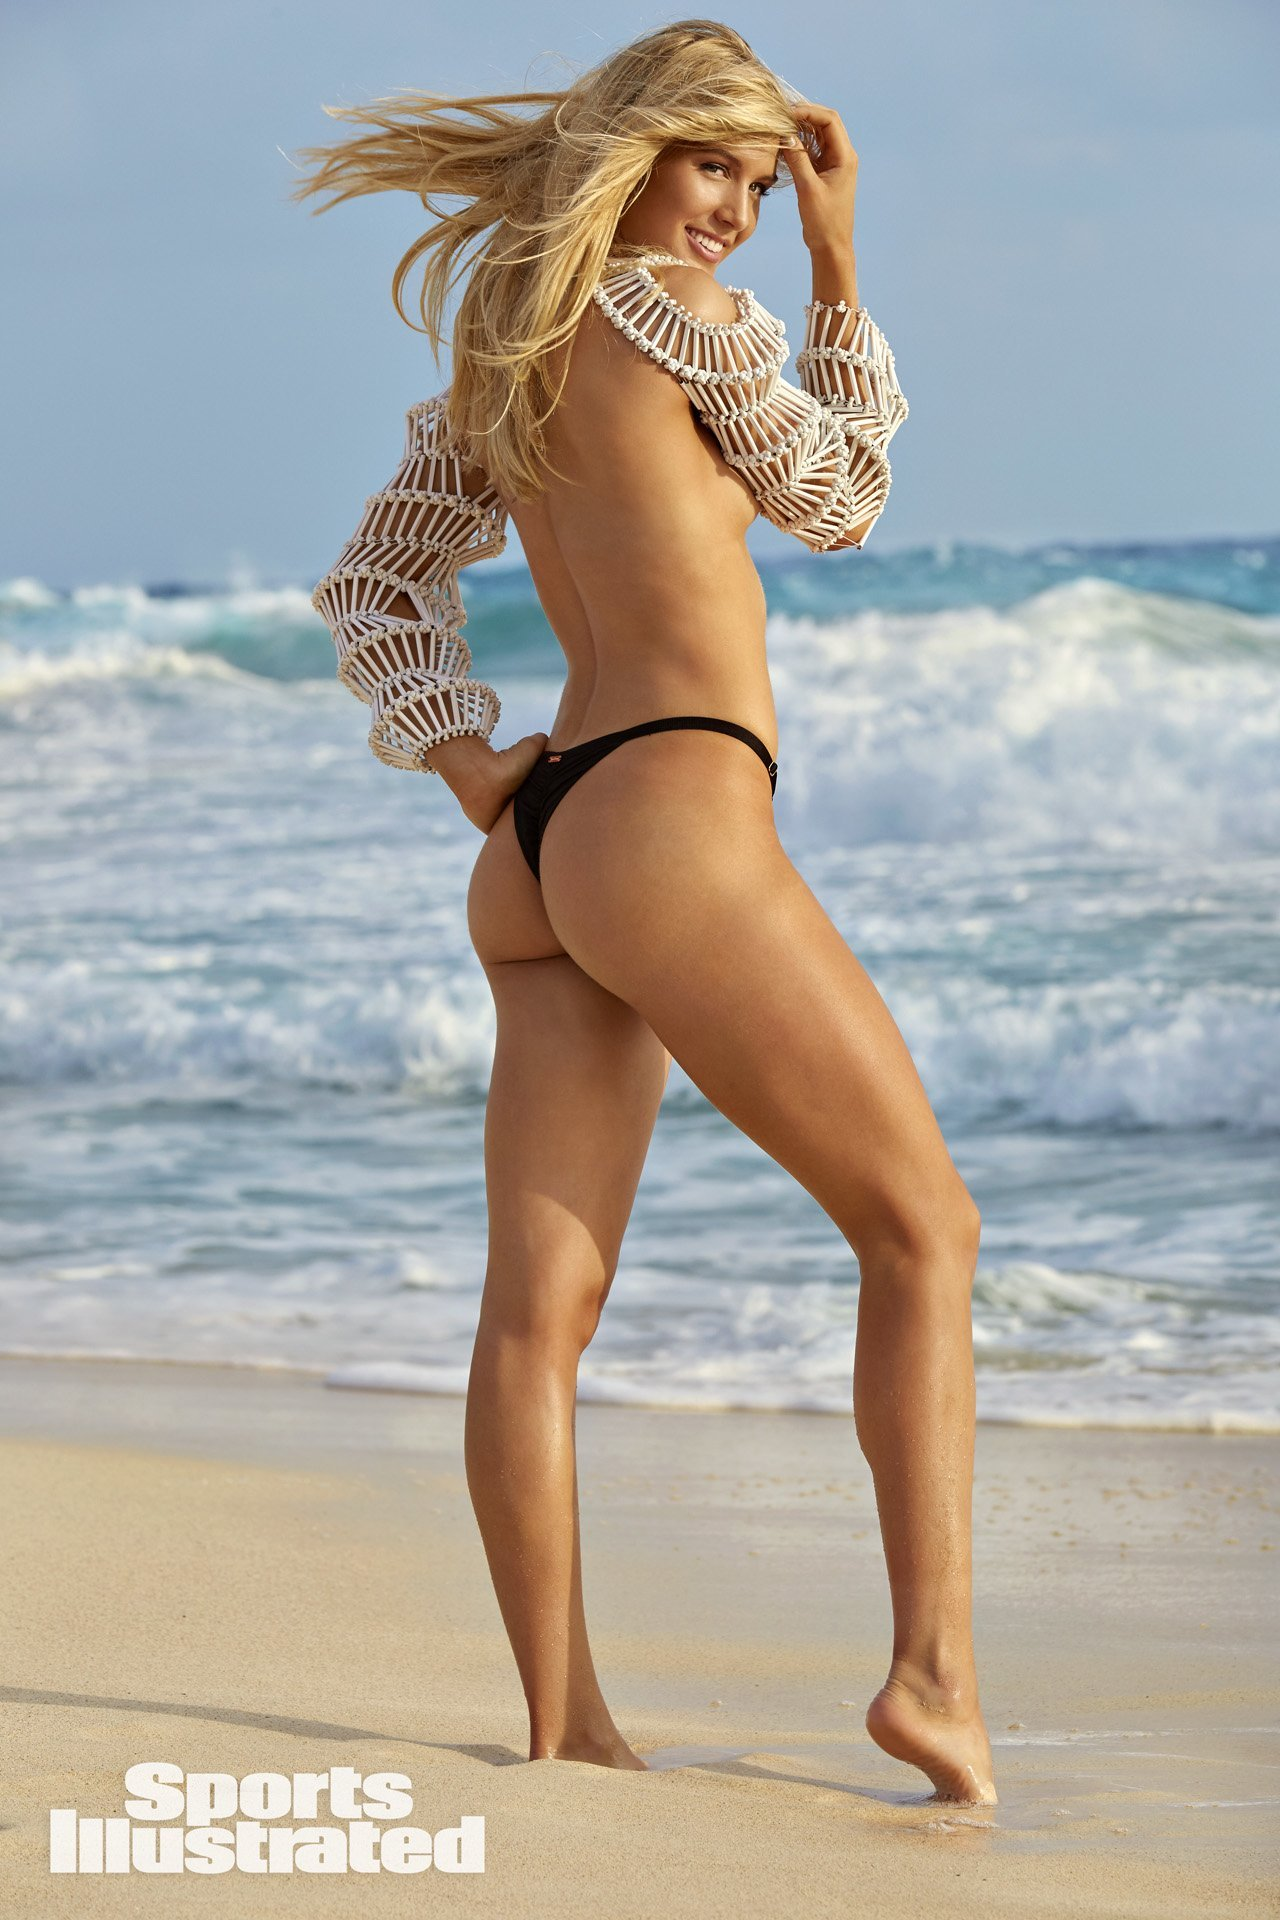 Eugenie Bouchard - Sports Illustrated Swimsuit Issue (2018)